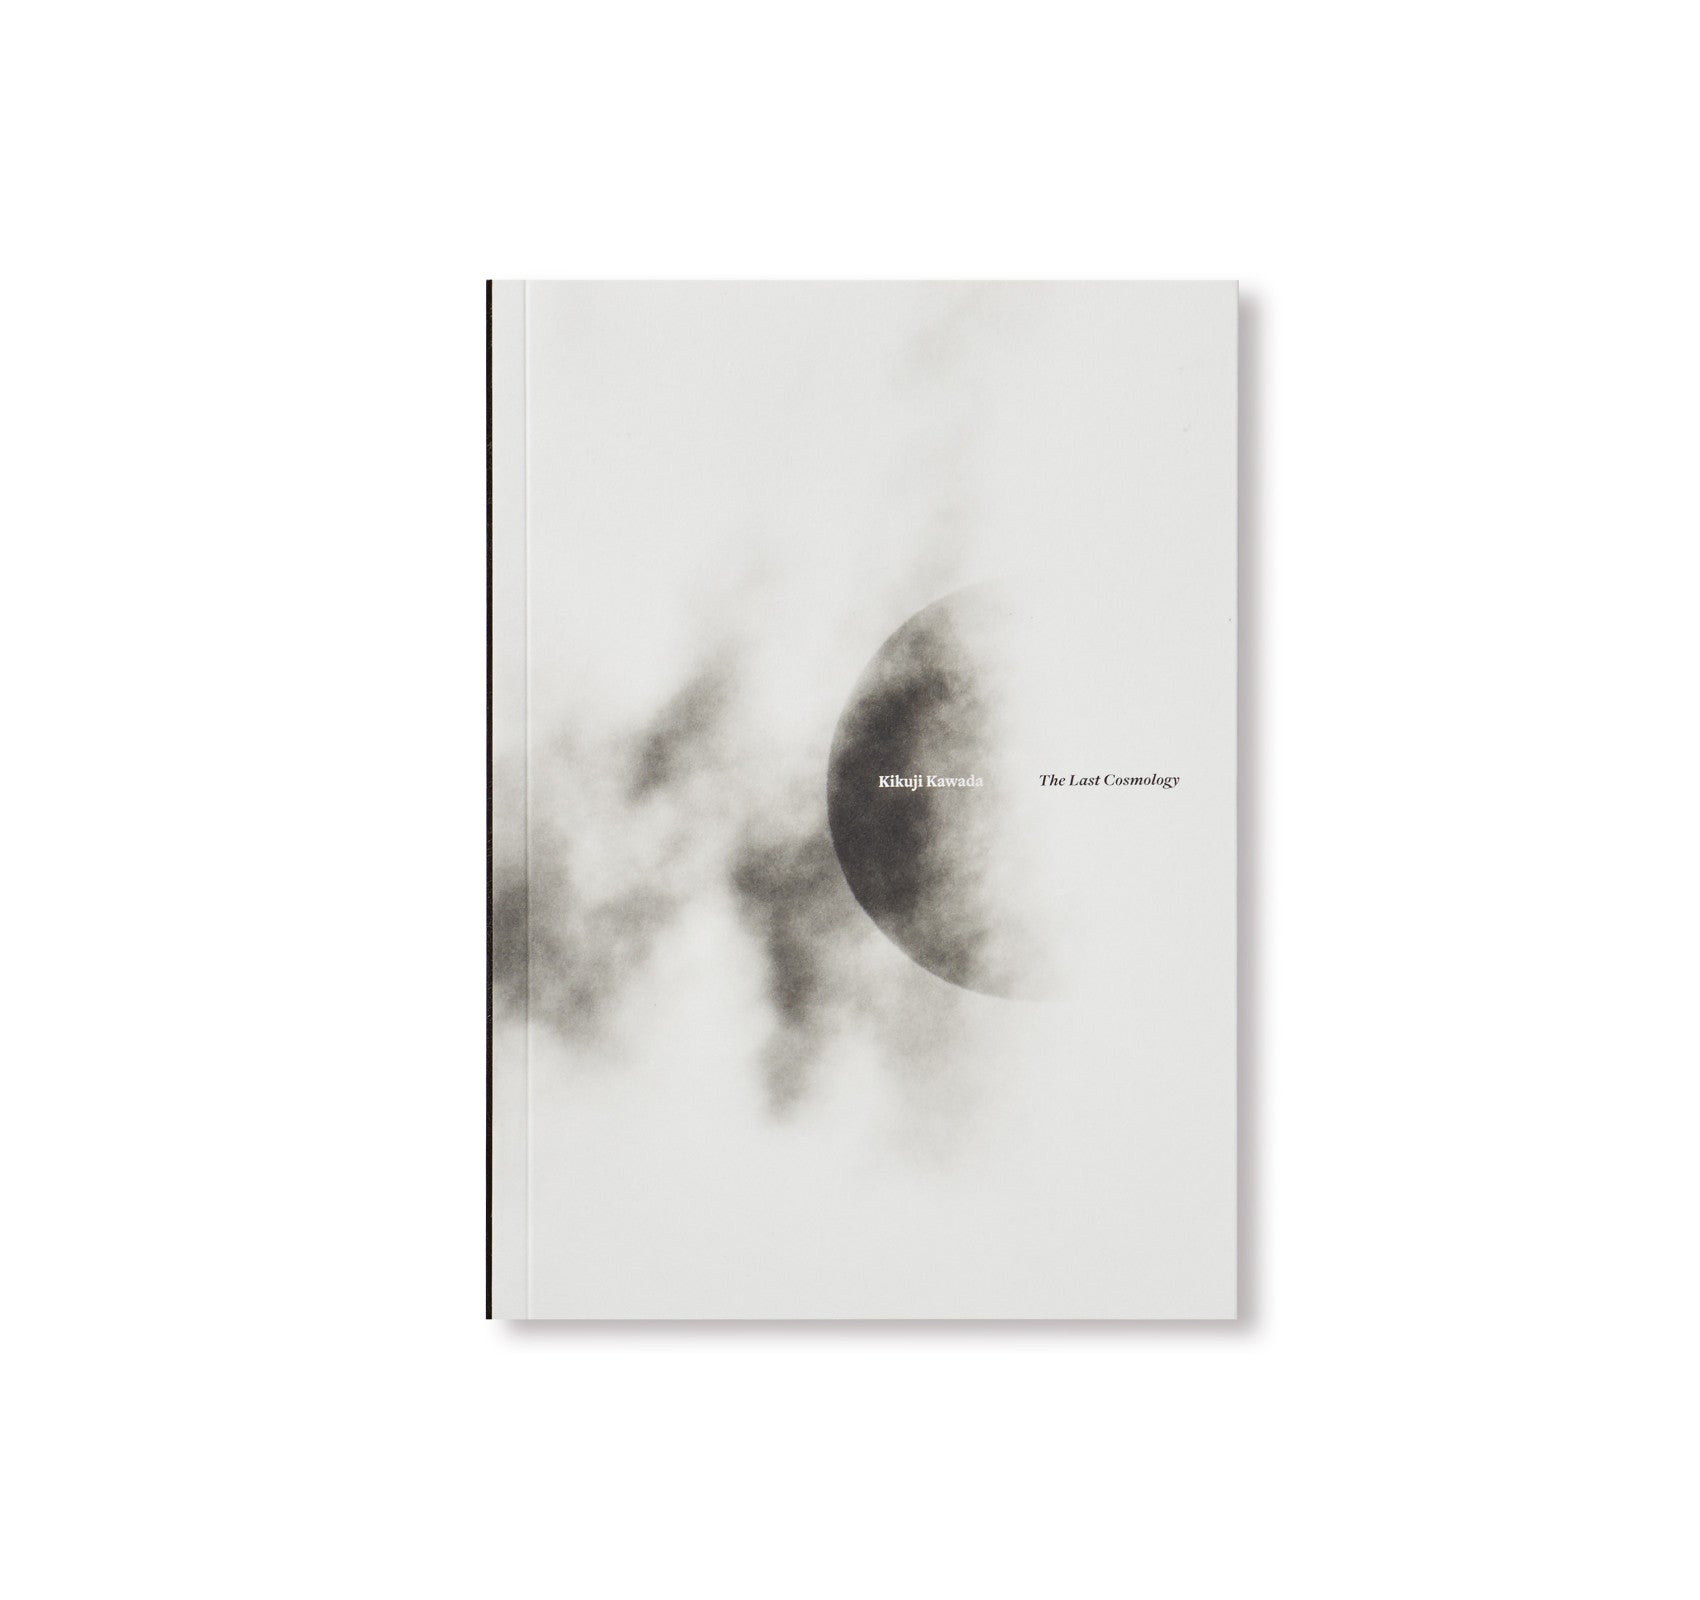 THE LAST COSMOLOGY by Kikuji Kawada [SPECIAL EDITION / SIGNED]